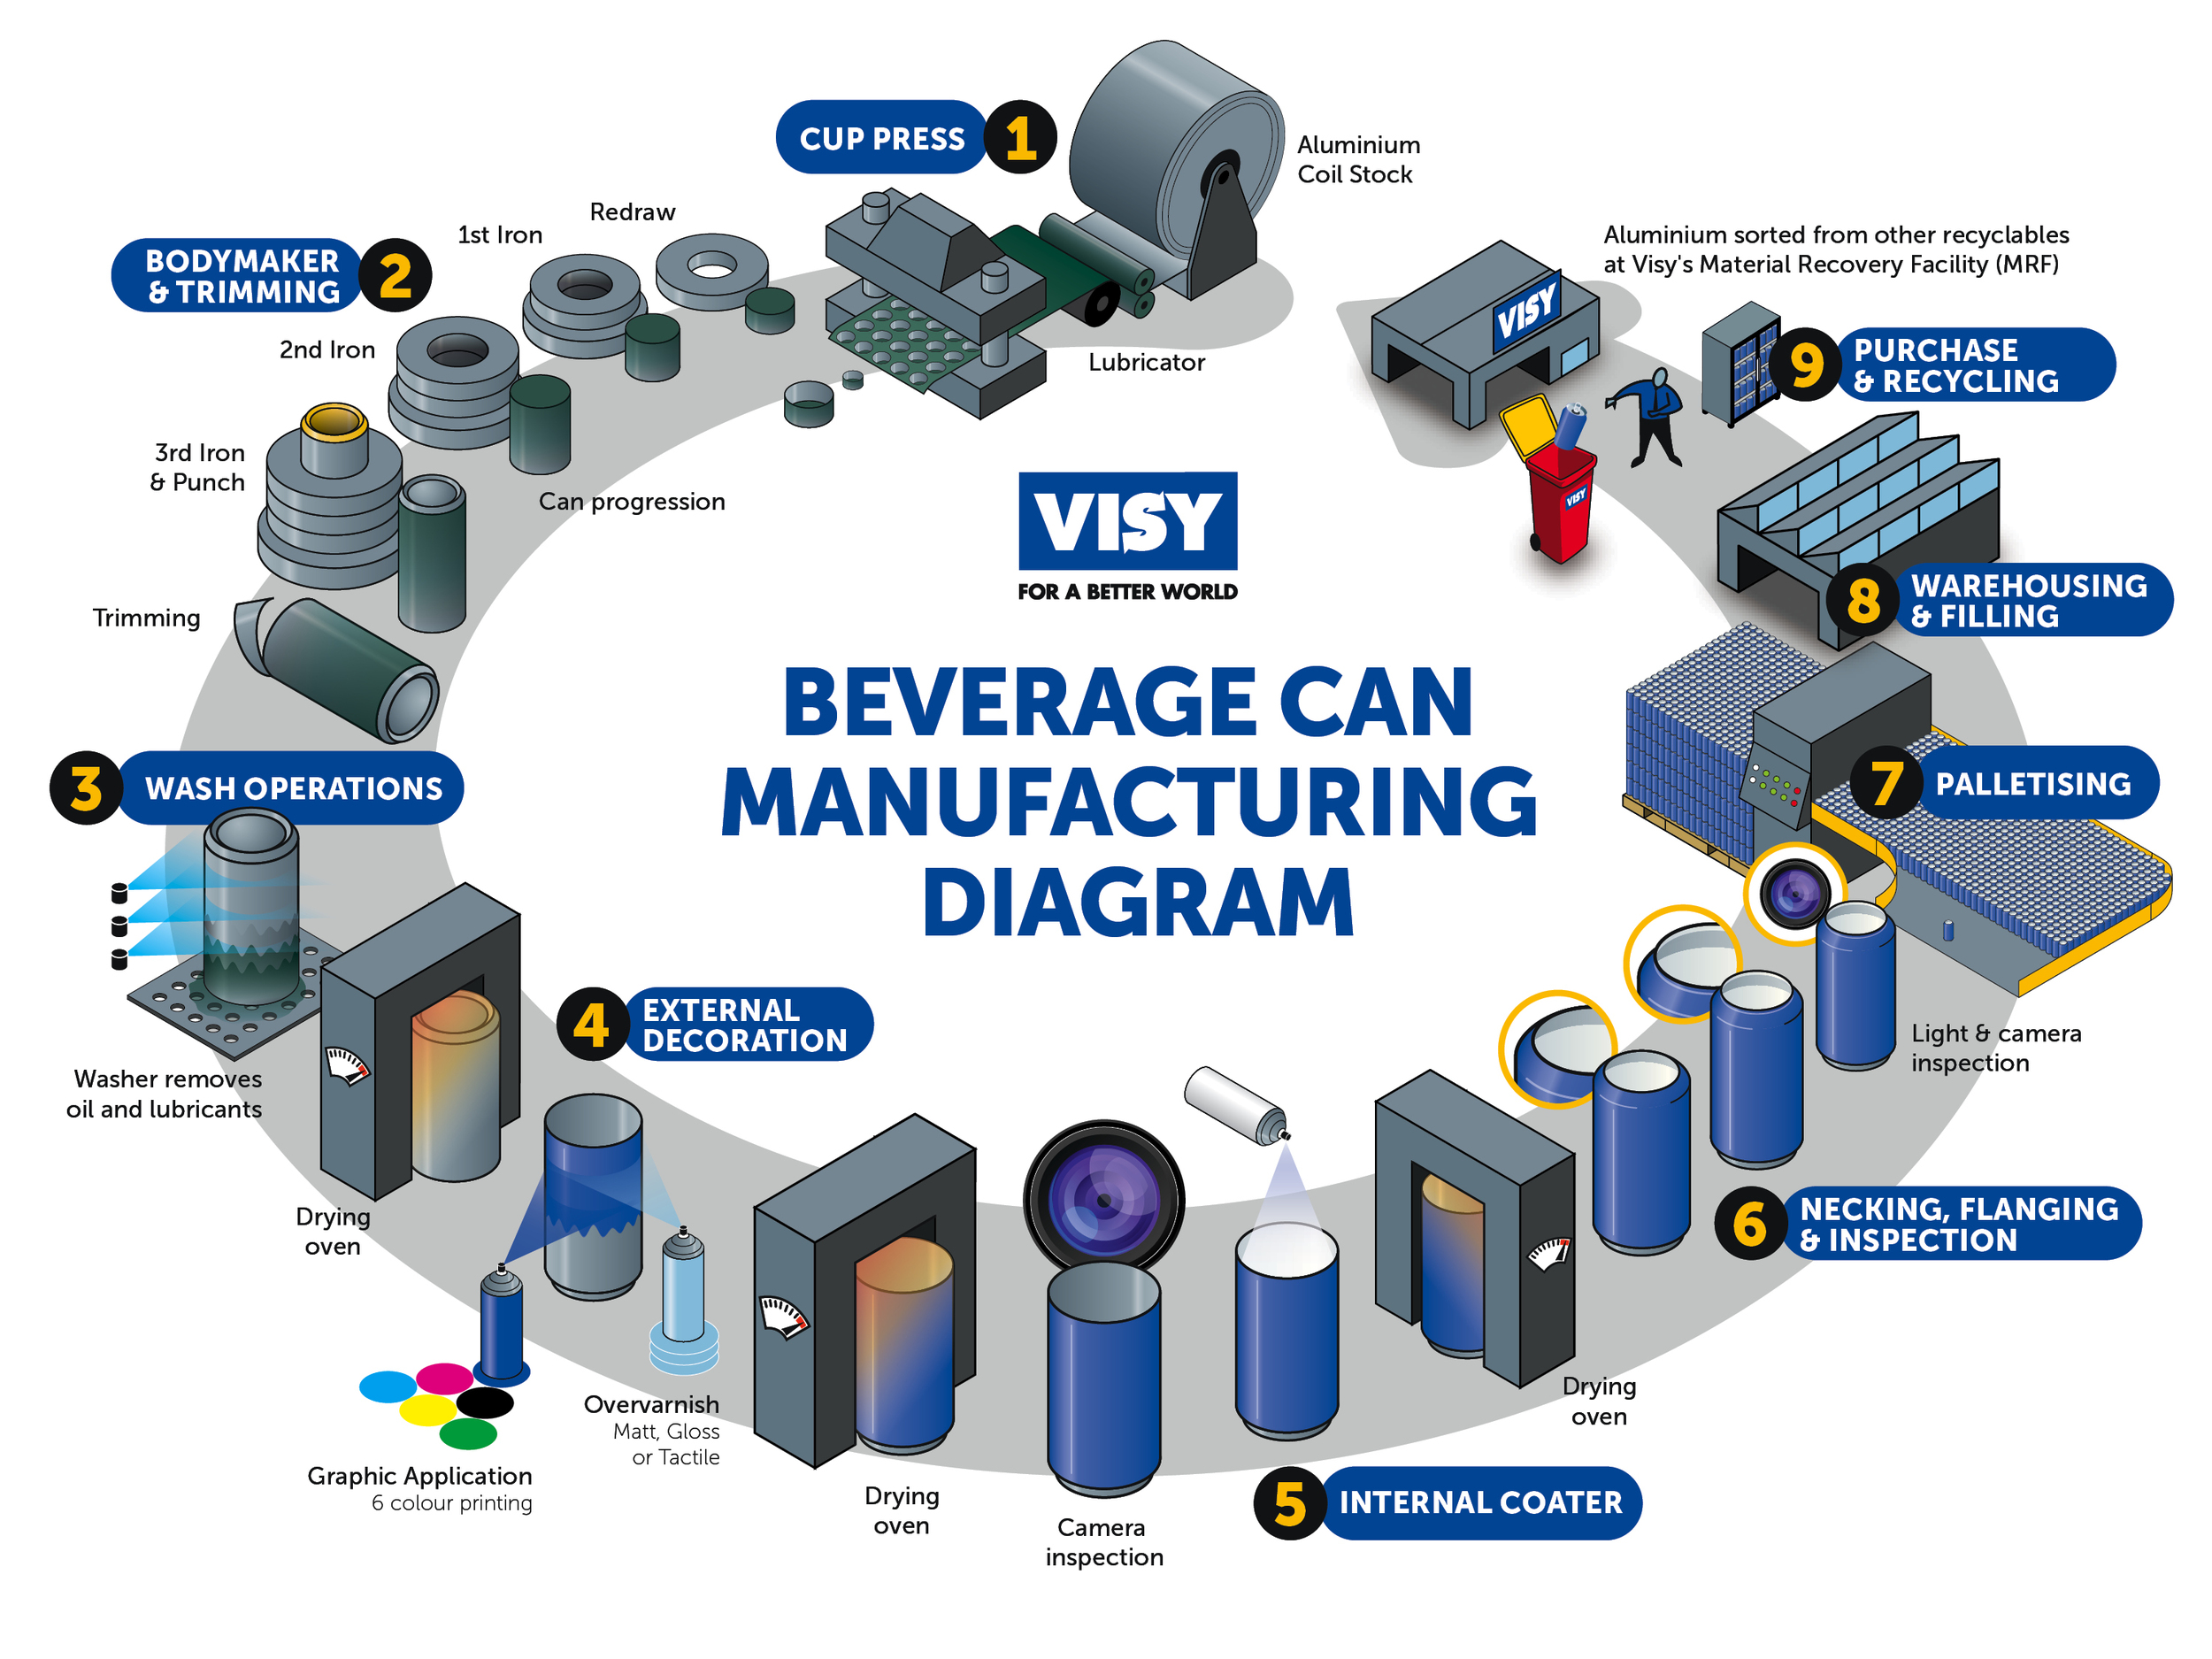 Visy Beverage Can Manufacturing